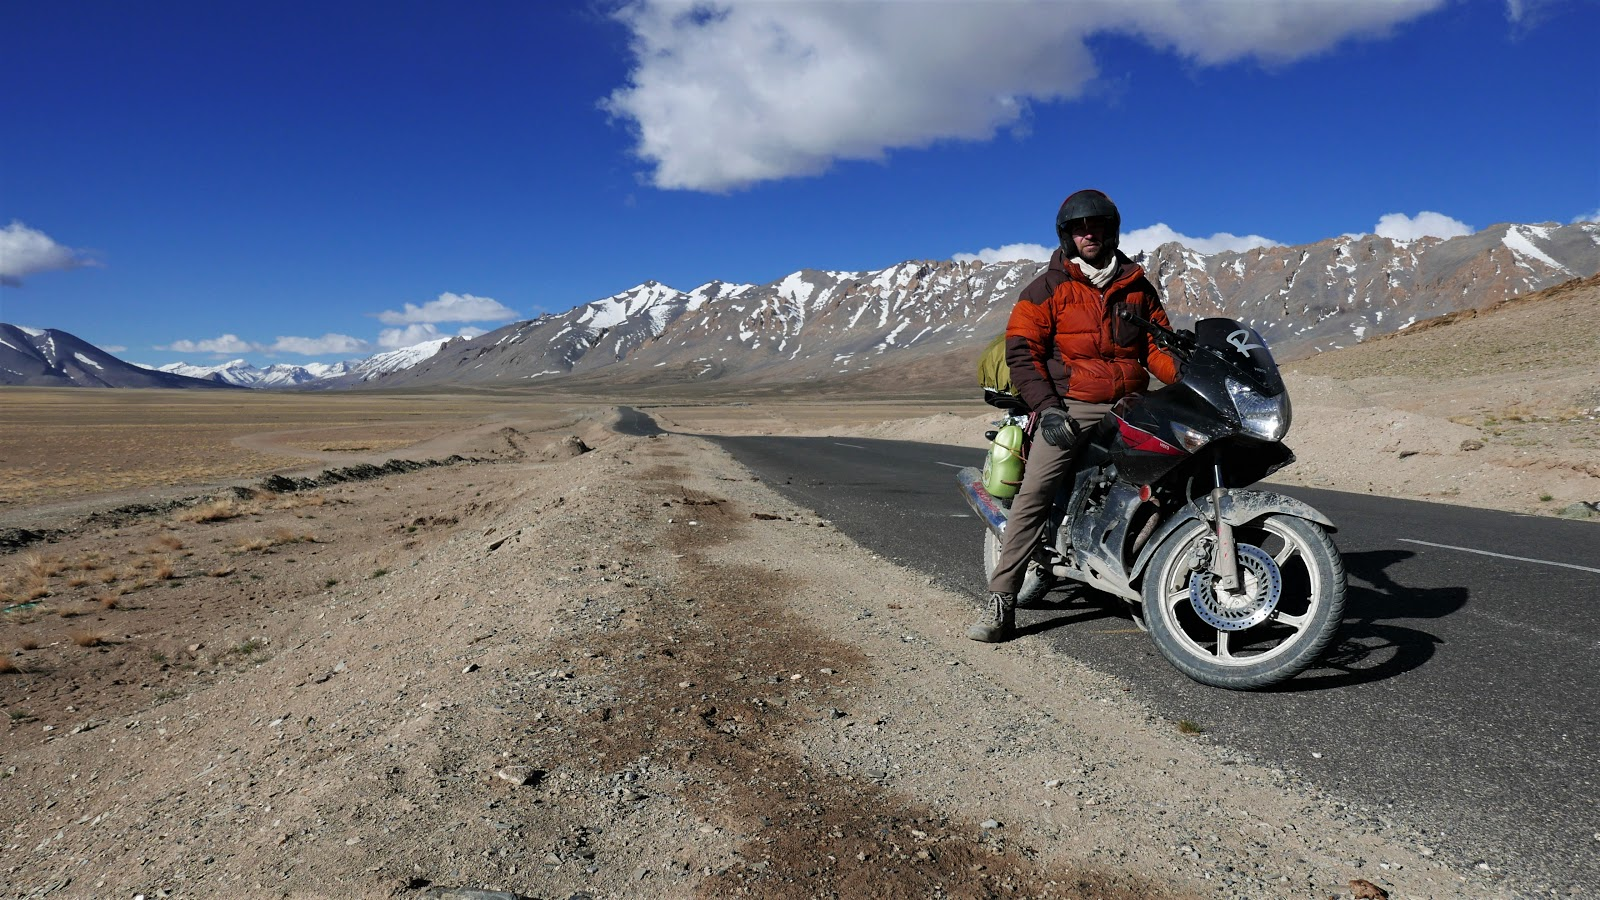 Josh motorcycling through the Himalayas